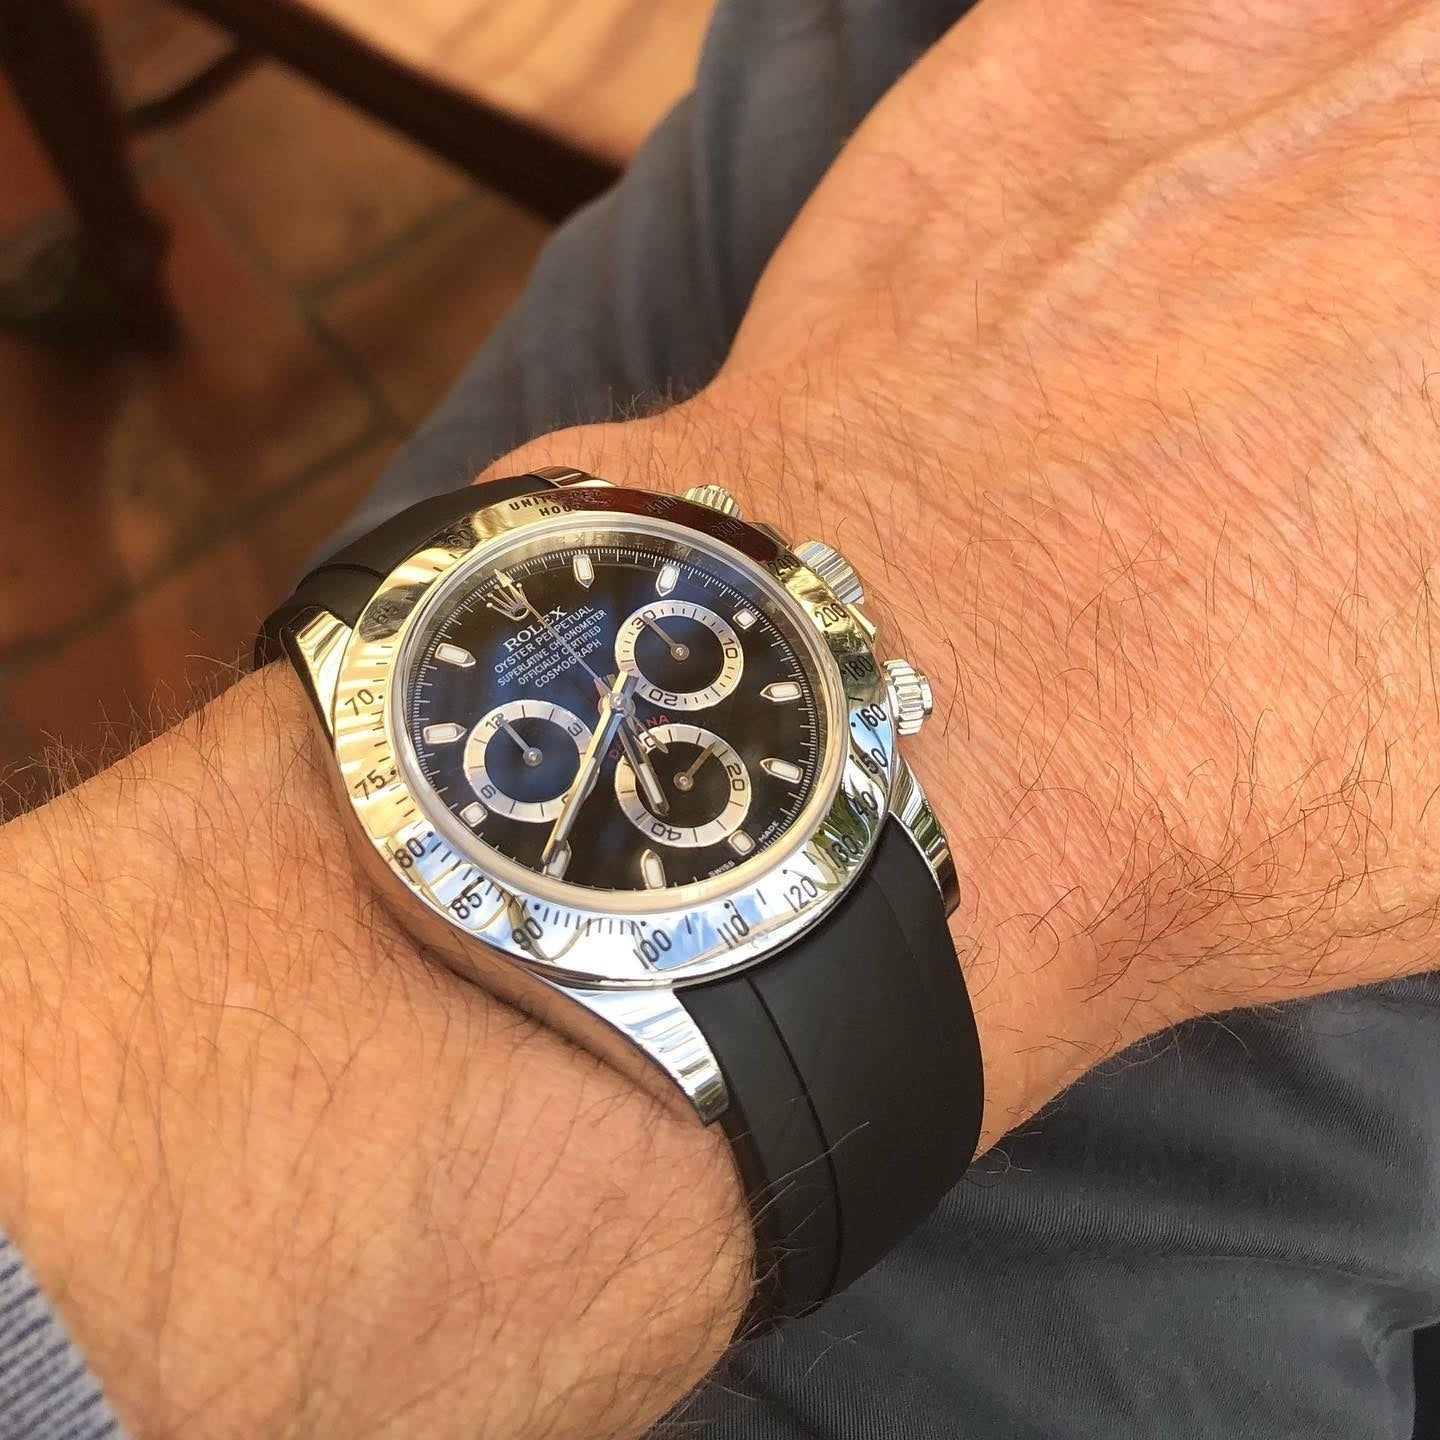 black rubber strap from everest bands on a rolex daytona watch with black dial